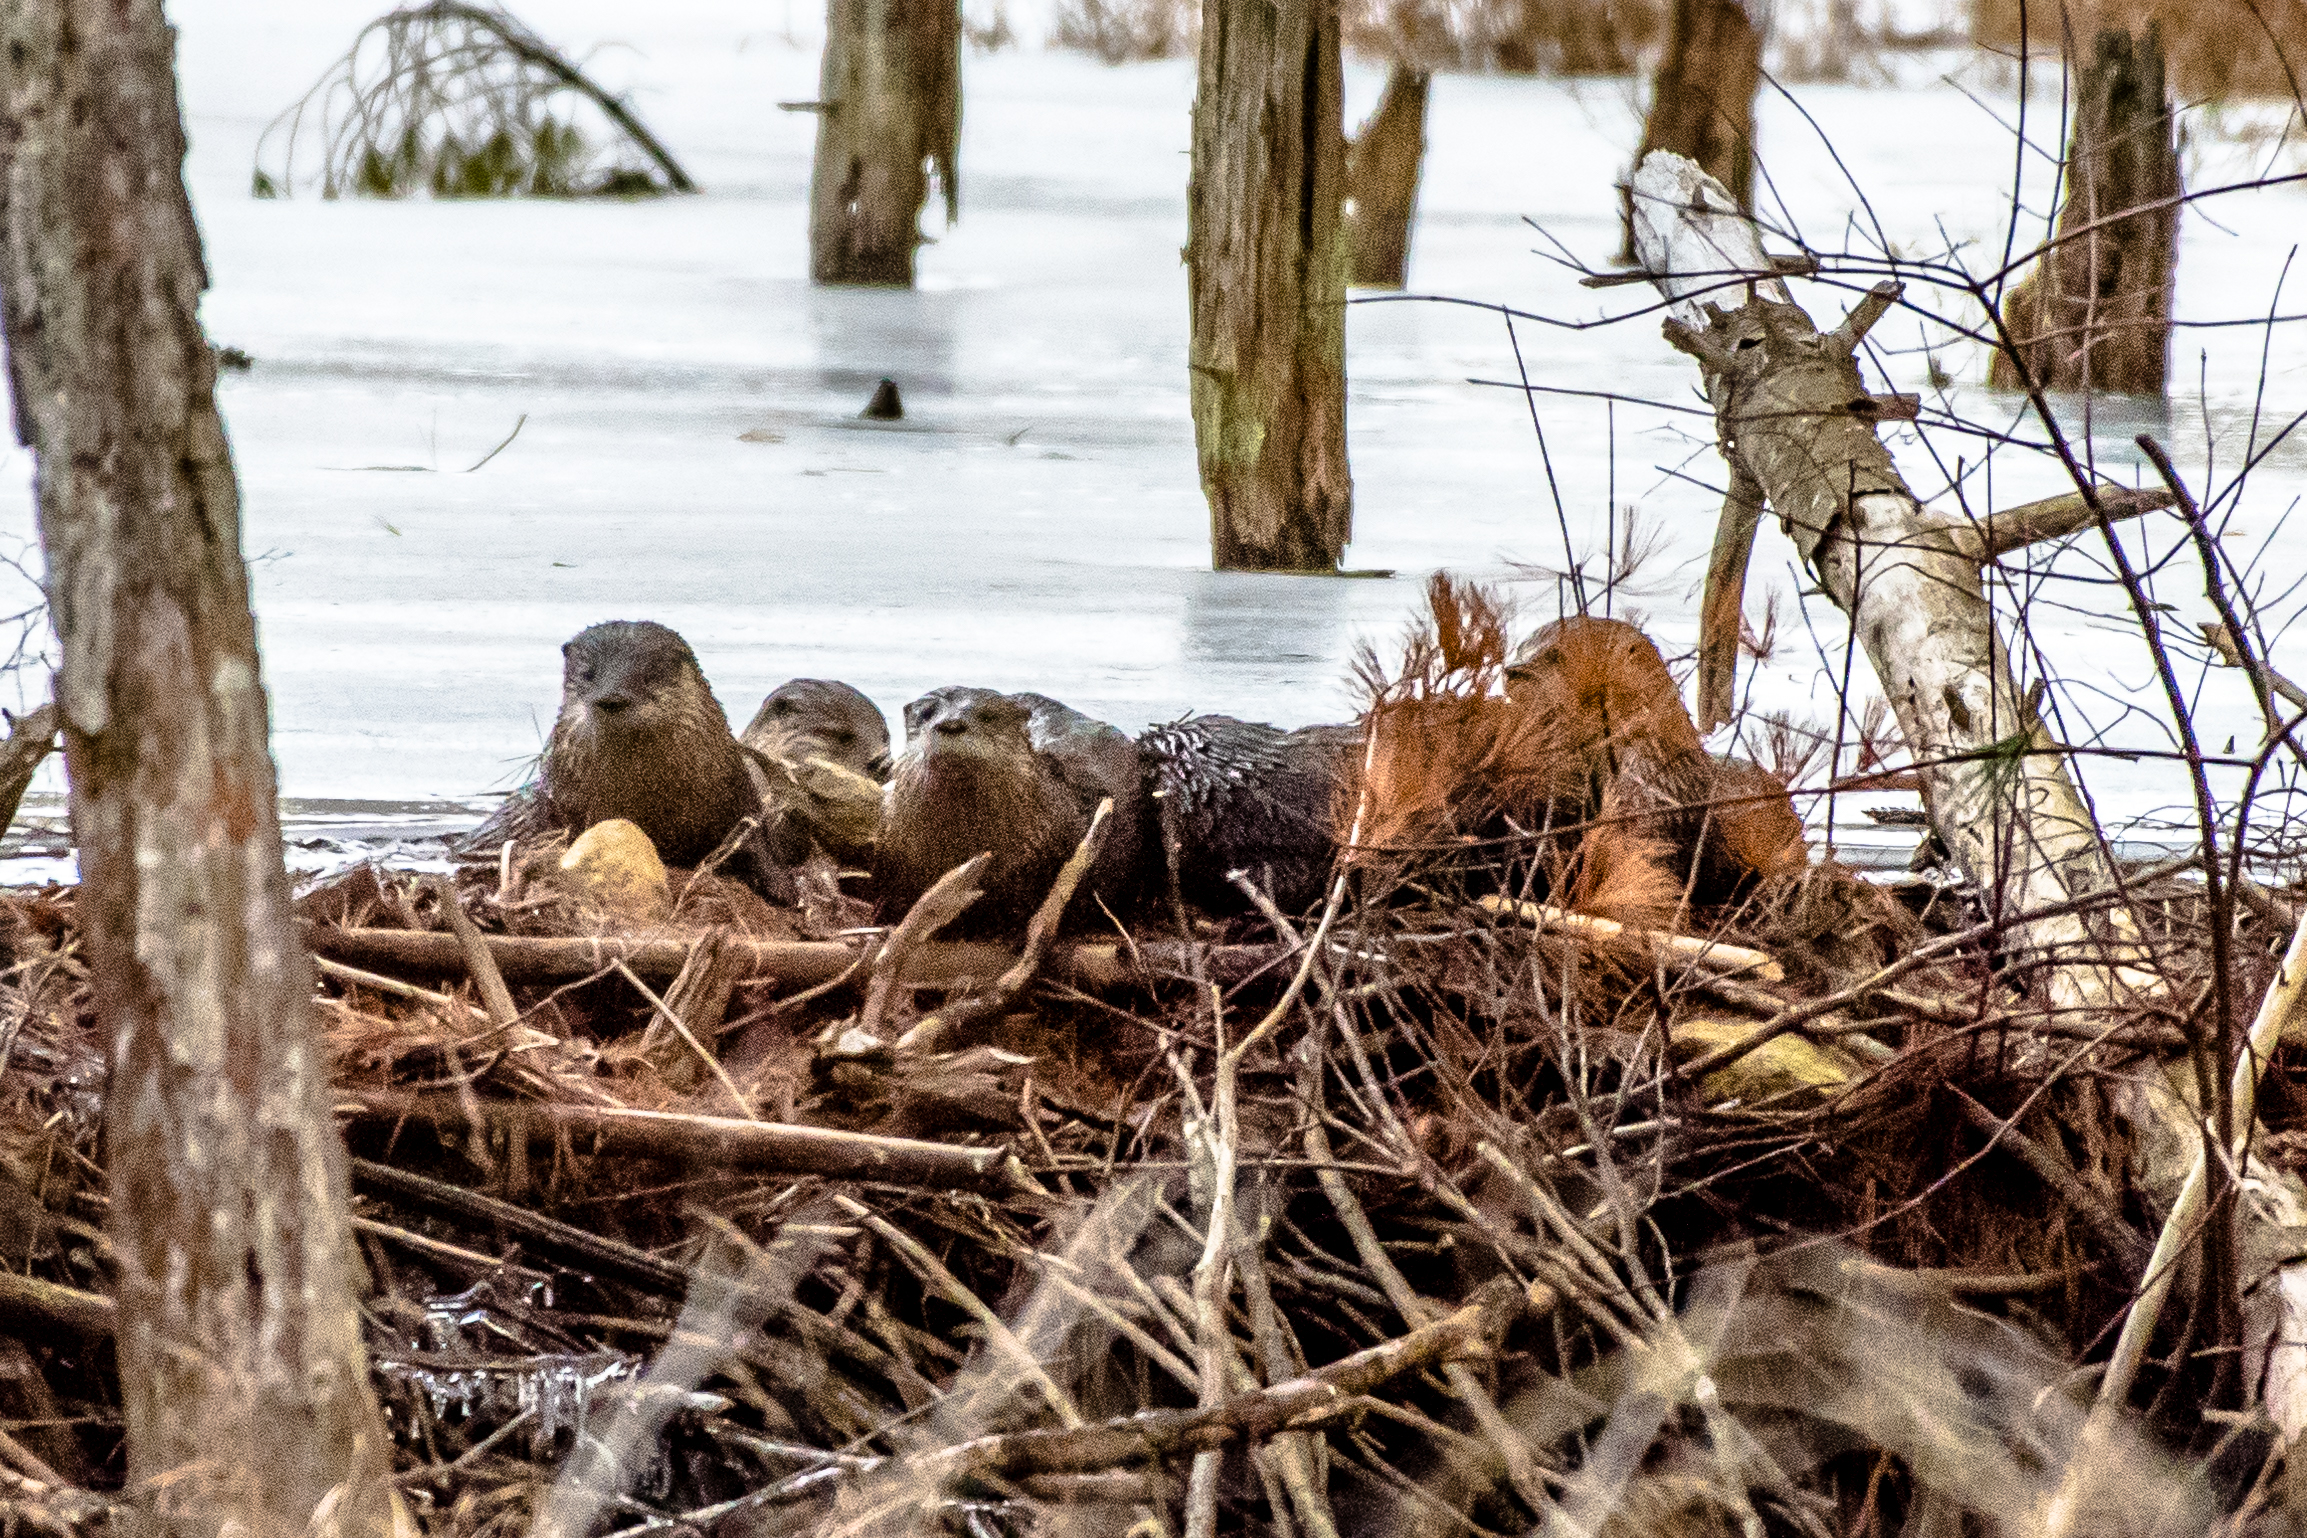 I took a family portrait of 5 river otters early this morning. Its always great fun to watch one or two but there was probably 2 adults and 3 young ones from last spring for a total of 5. What a blast!  Did you know rivers otters have 1 million hairs per square inch of skin? Thats how they can keep warm in ice cold water.  2/23/16